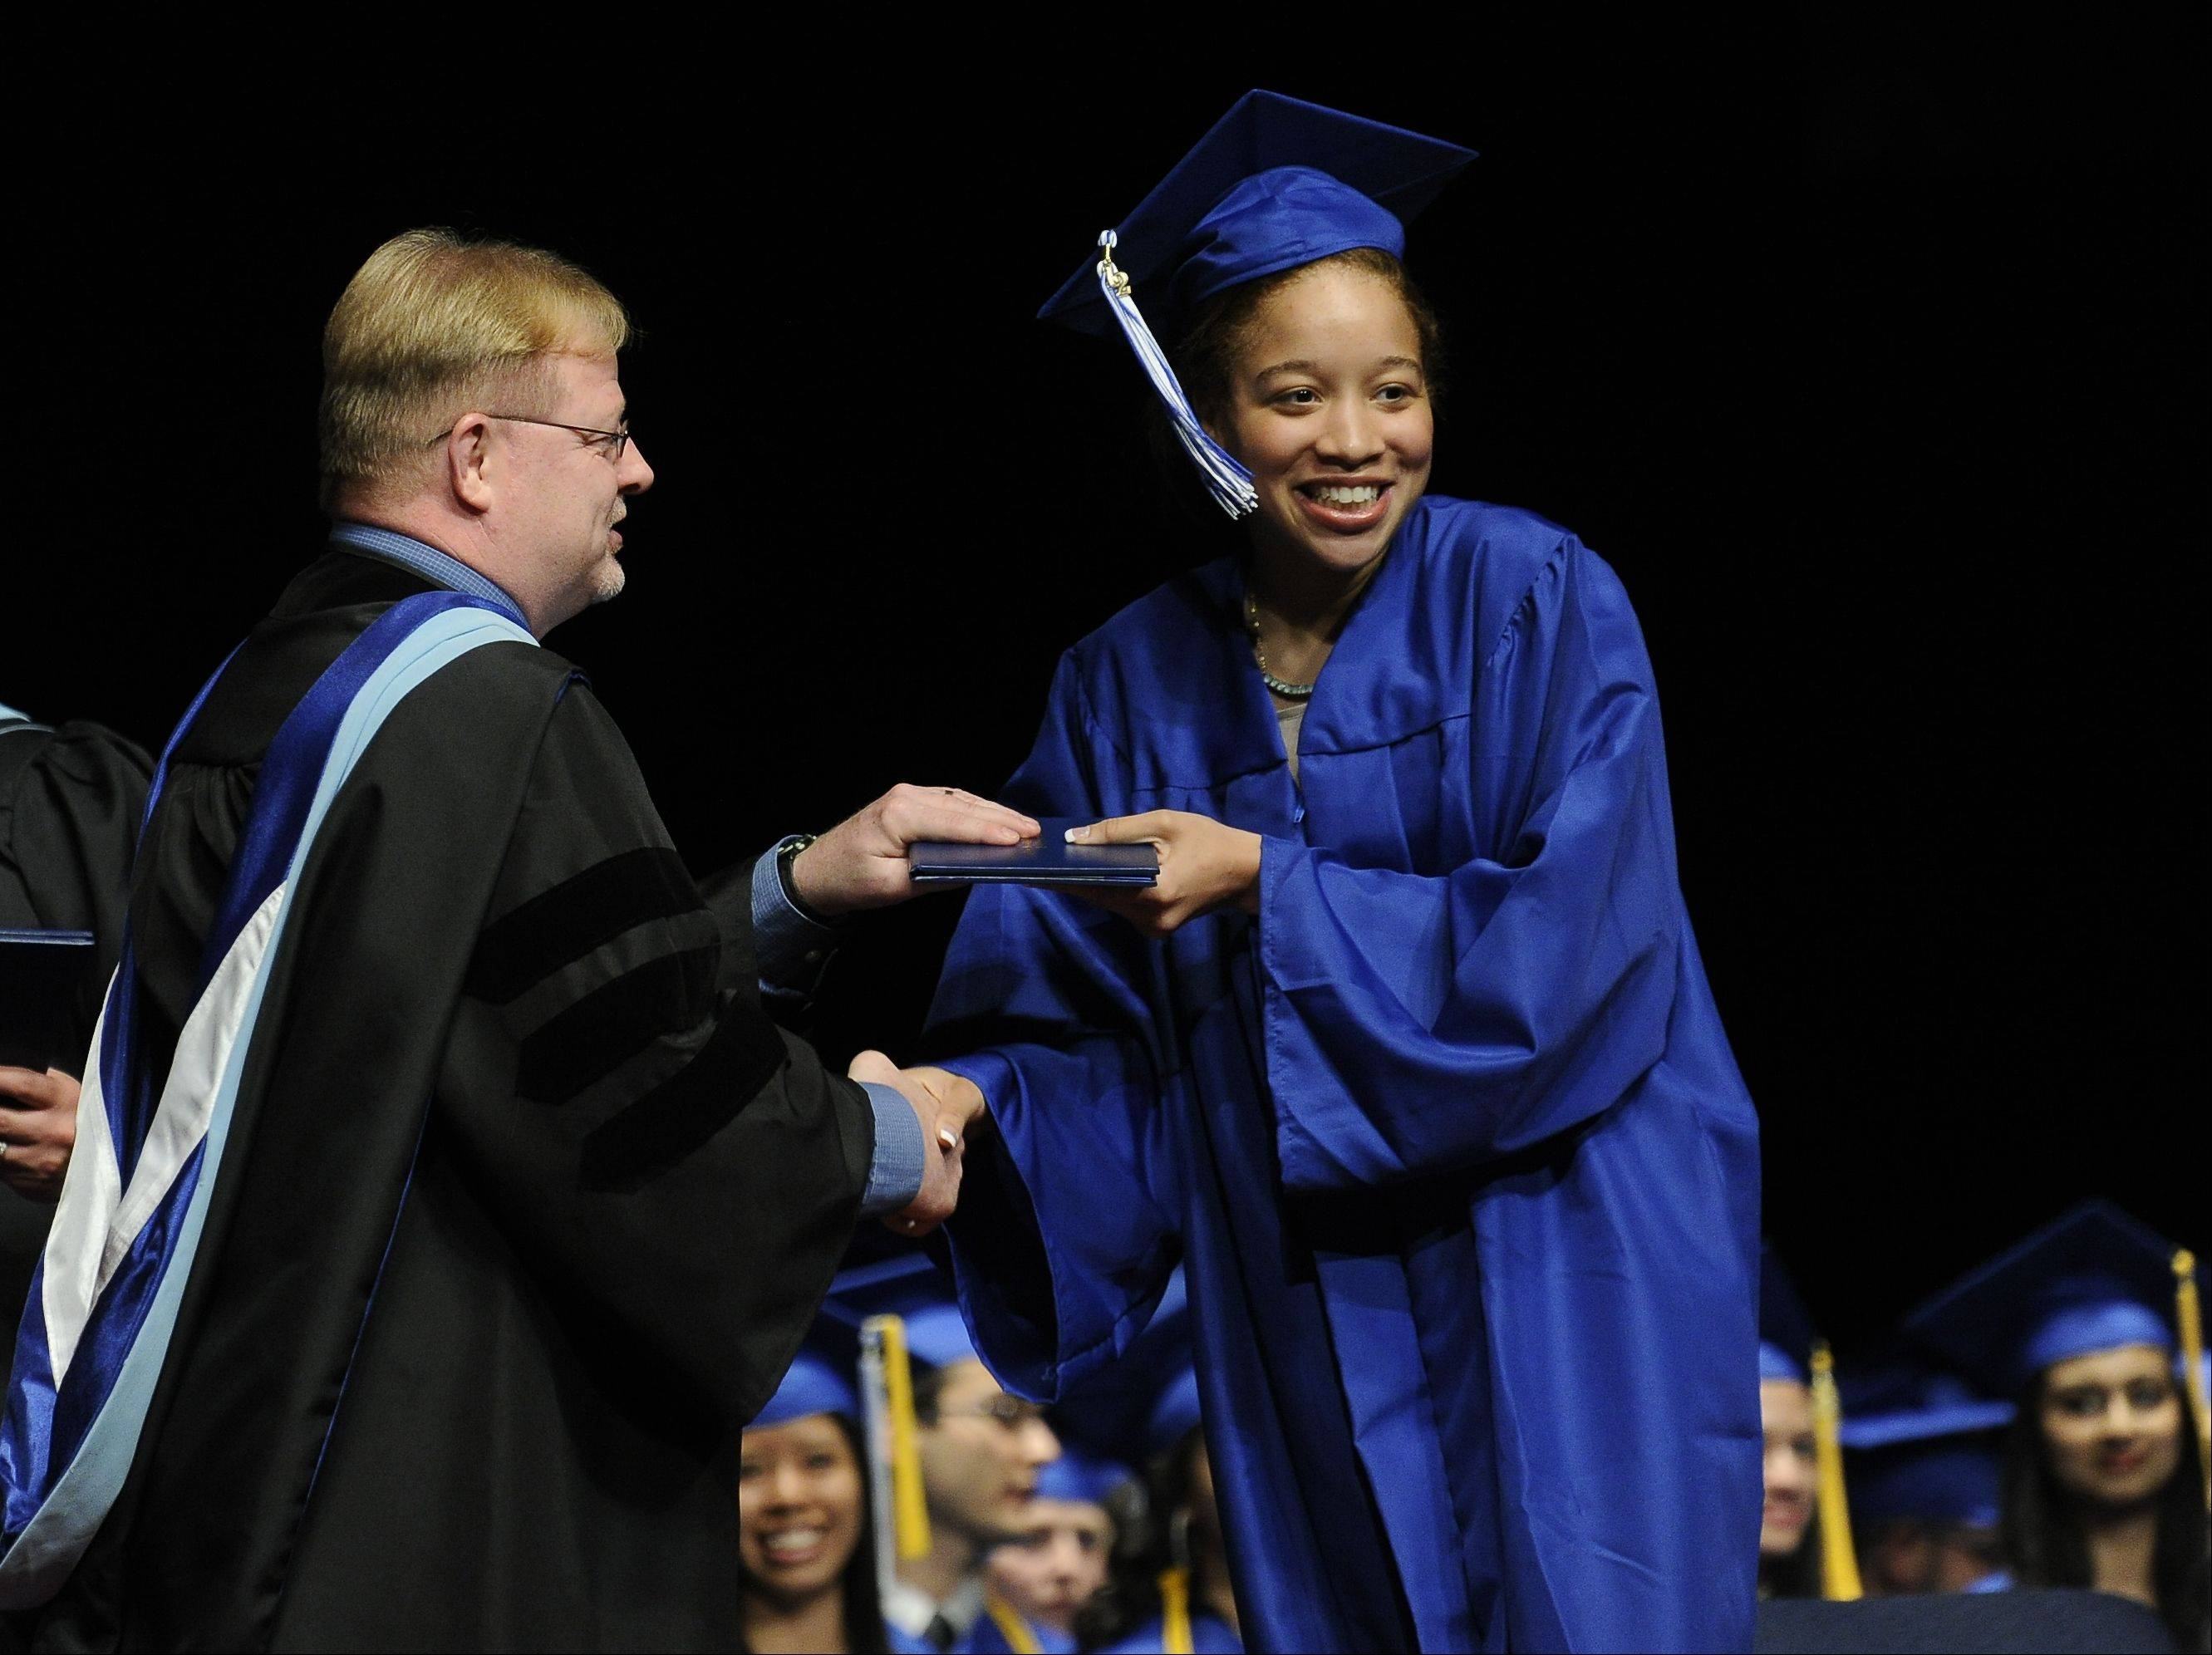 Images from the Maine East High School graduation on Monday, June 4th, in Rosemont at the Akoo Theatre.